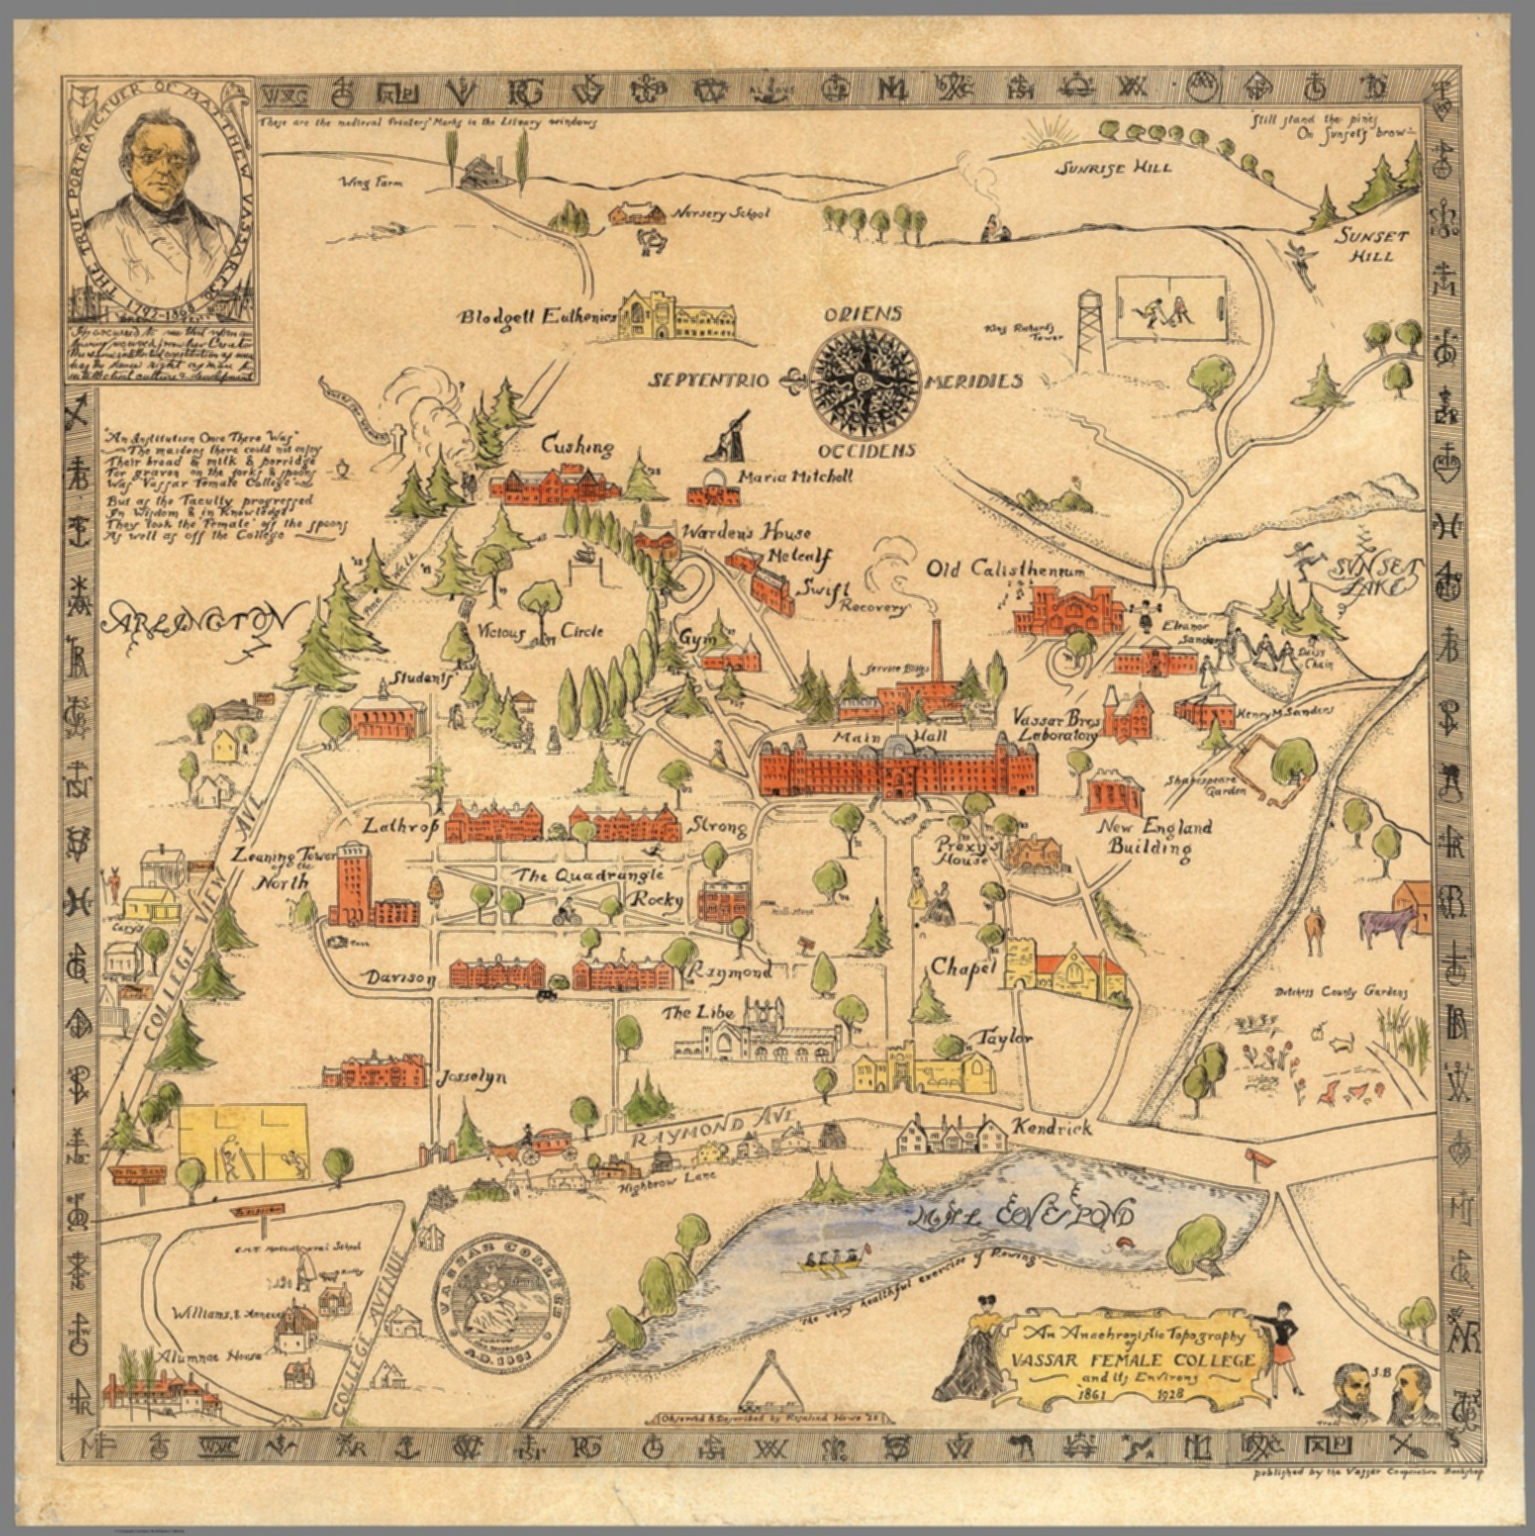 An Anachronistic topography of Vassar Female College and its ...